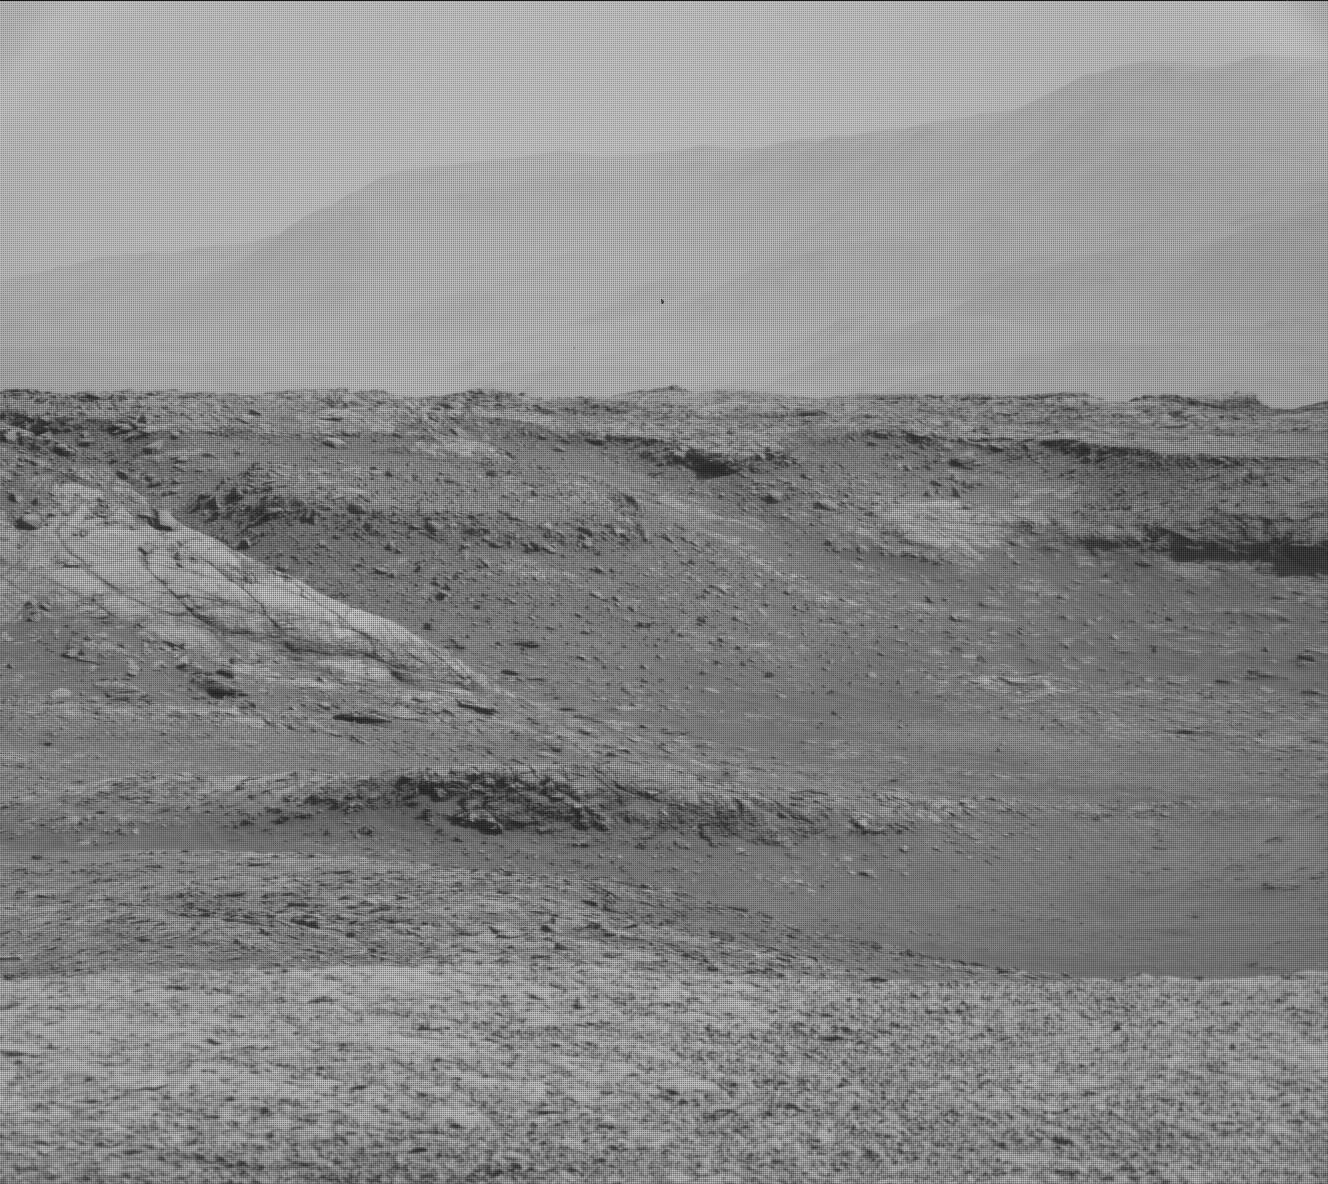 Nasa's Mars rover Curiosity acquired this image using its Mast Camera (Mastcam) on Sol 1931